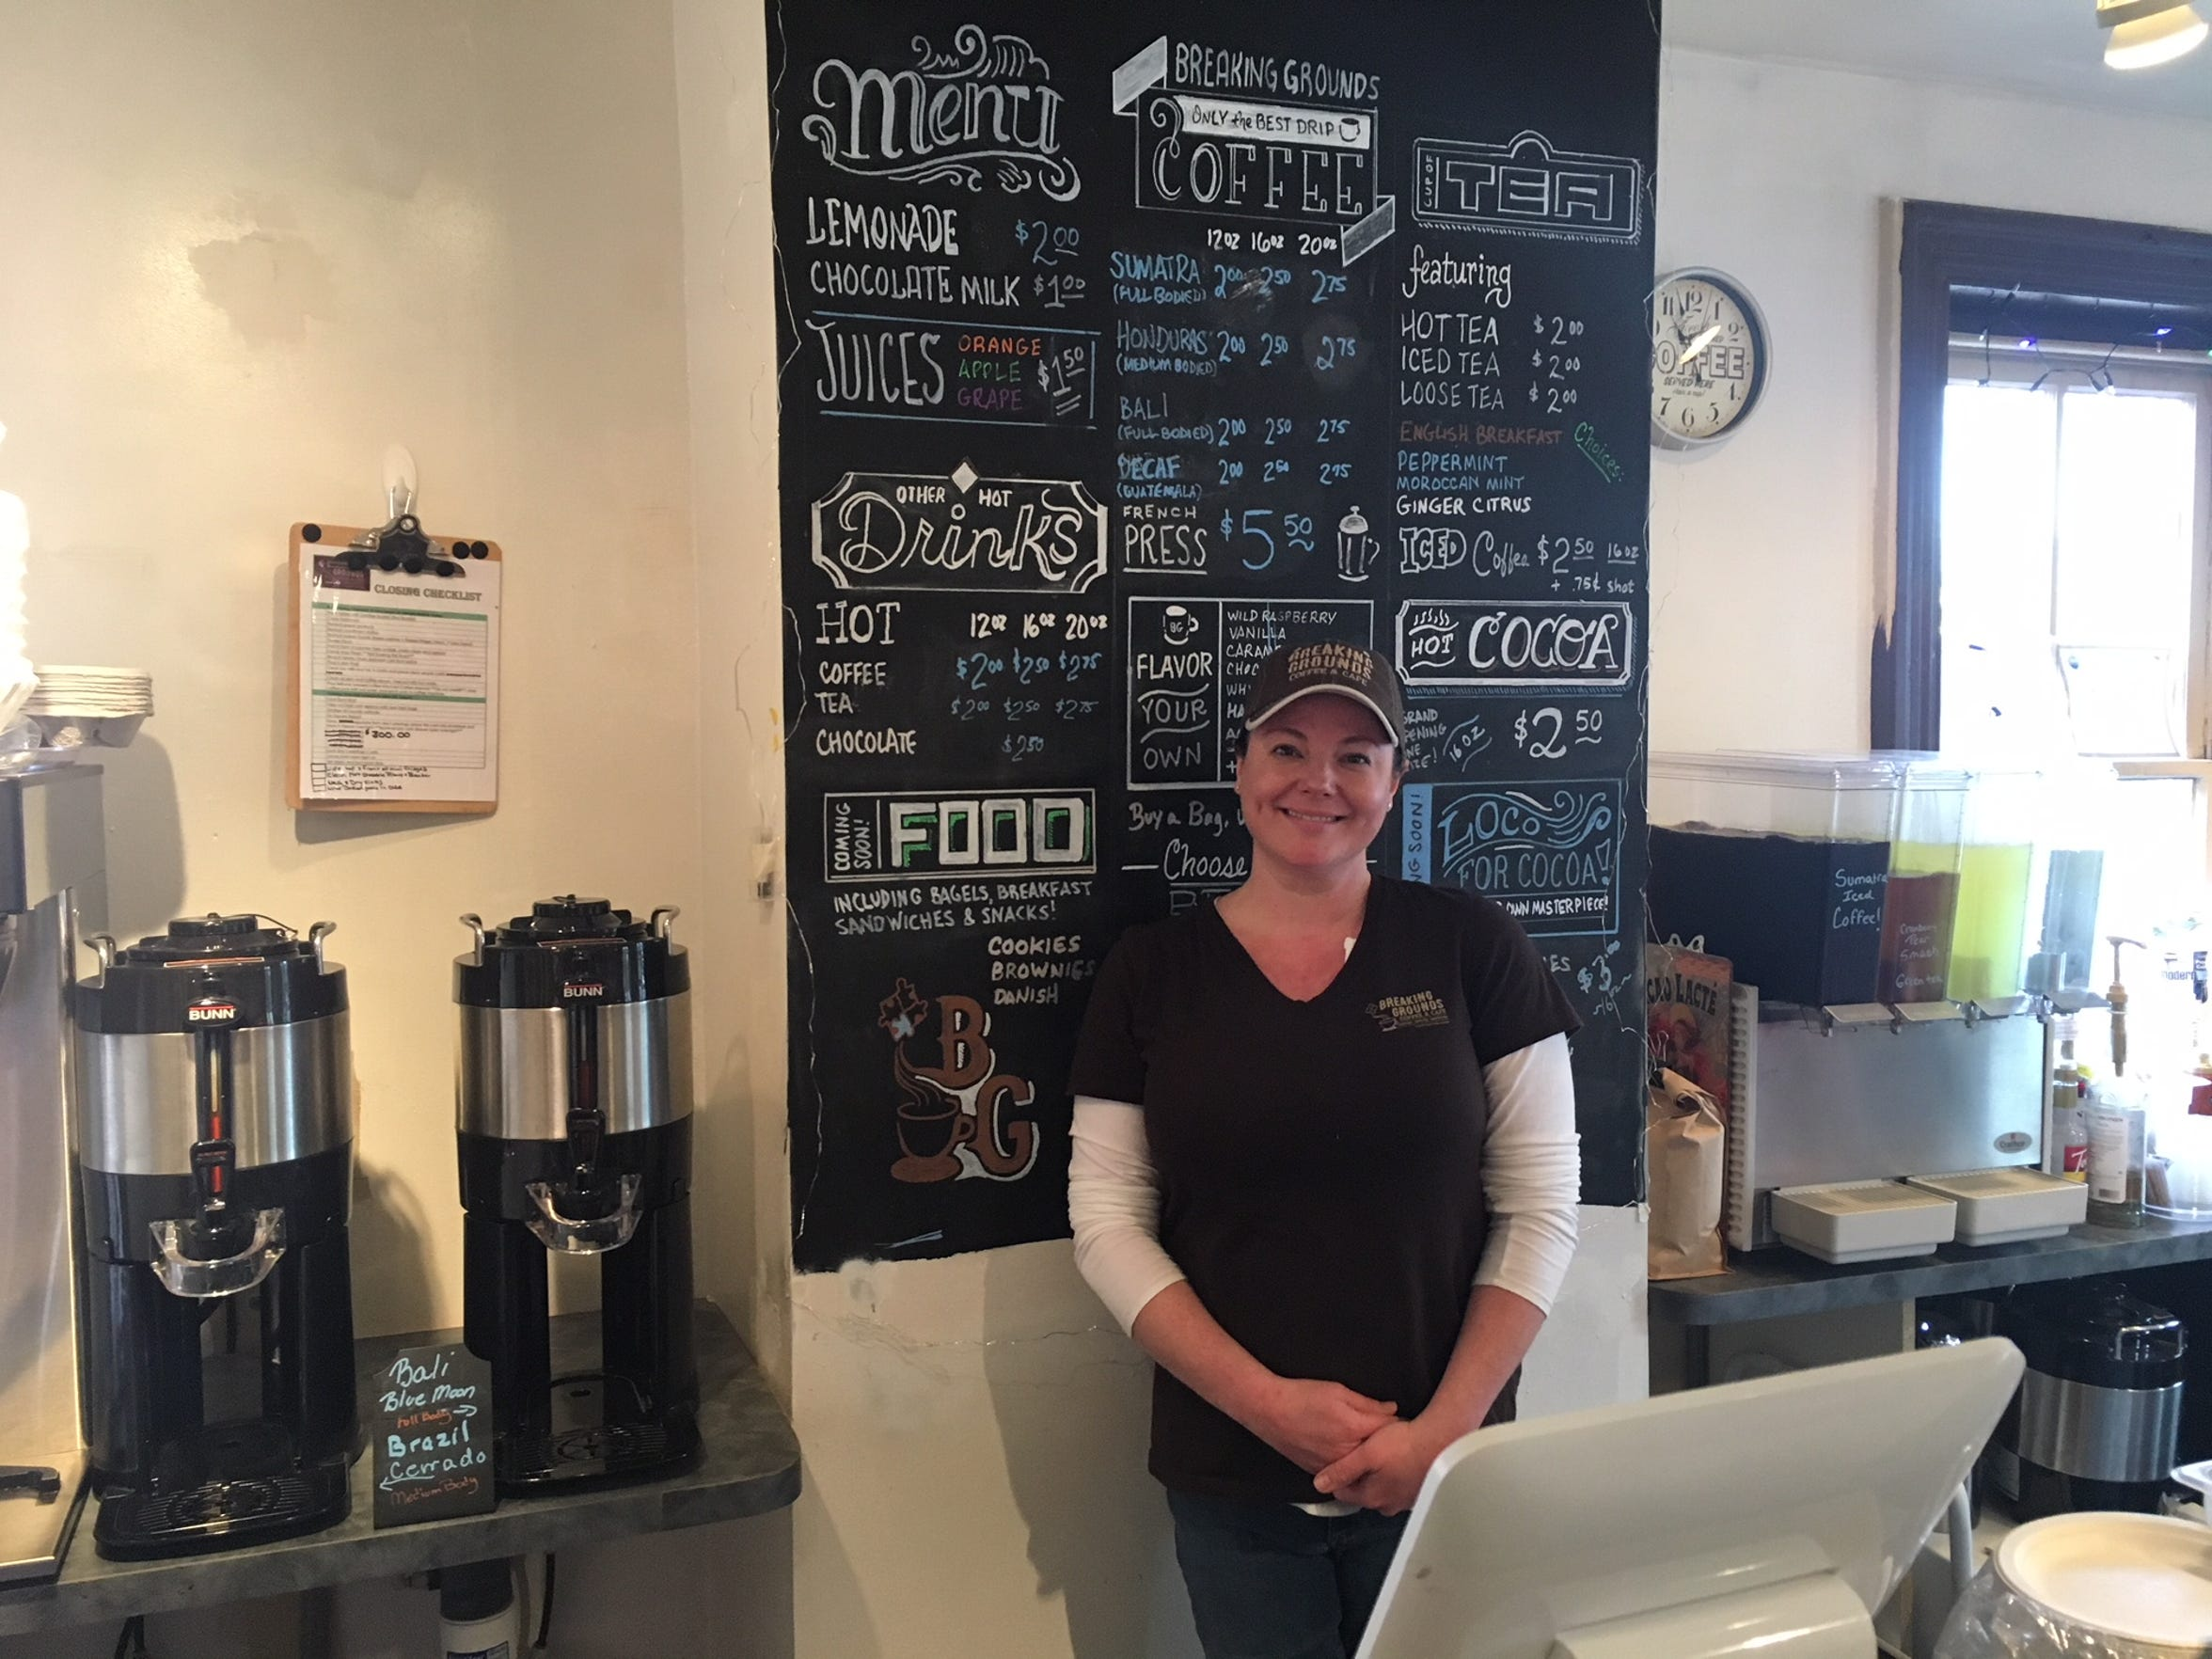 Brandi Fishman of Medford runs Breaking Grounds Coffee & Cafe, a business created to offer jobs to developmentally disabled adults. Fishman is the founder of the Zefer Foundation, a nonprofit, which owns the Mount Holly-based coffee shop.